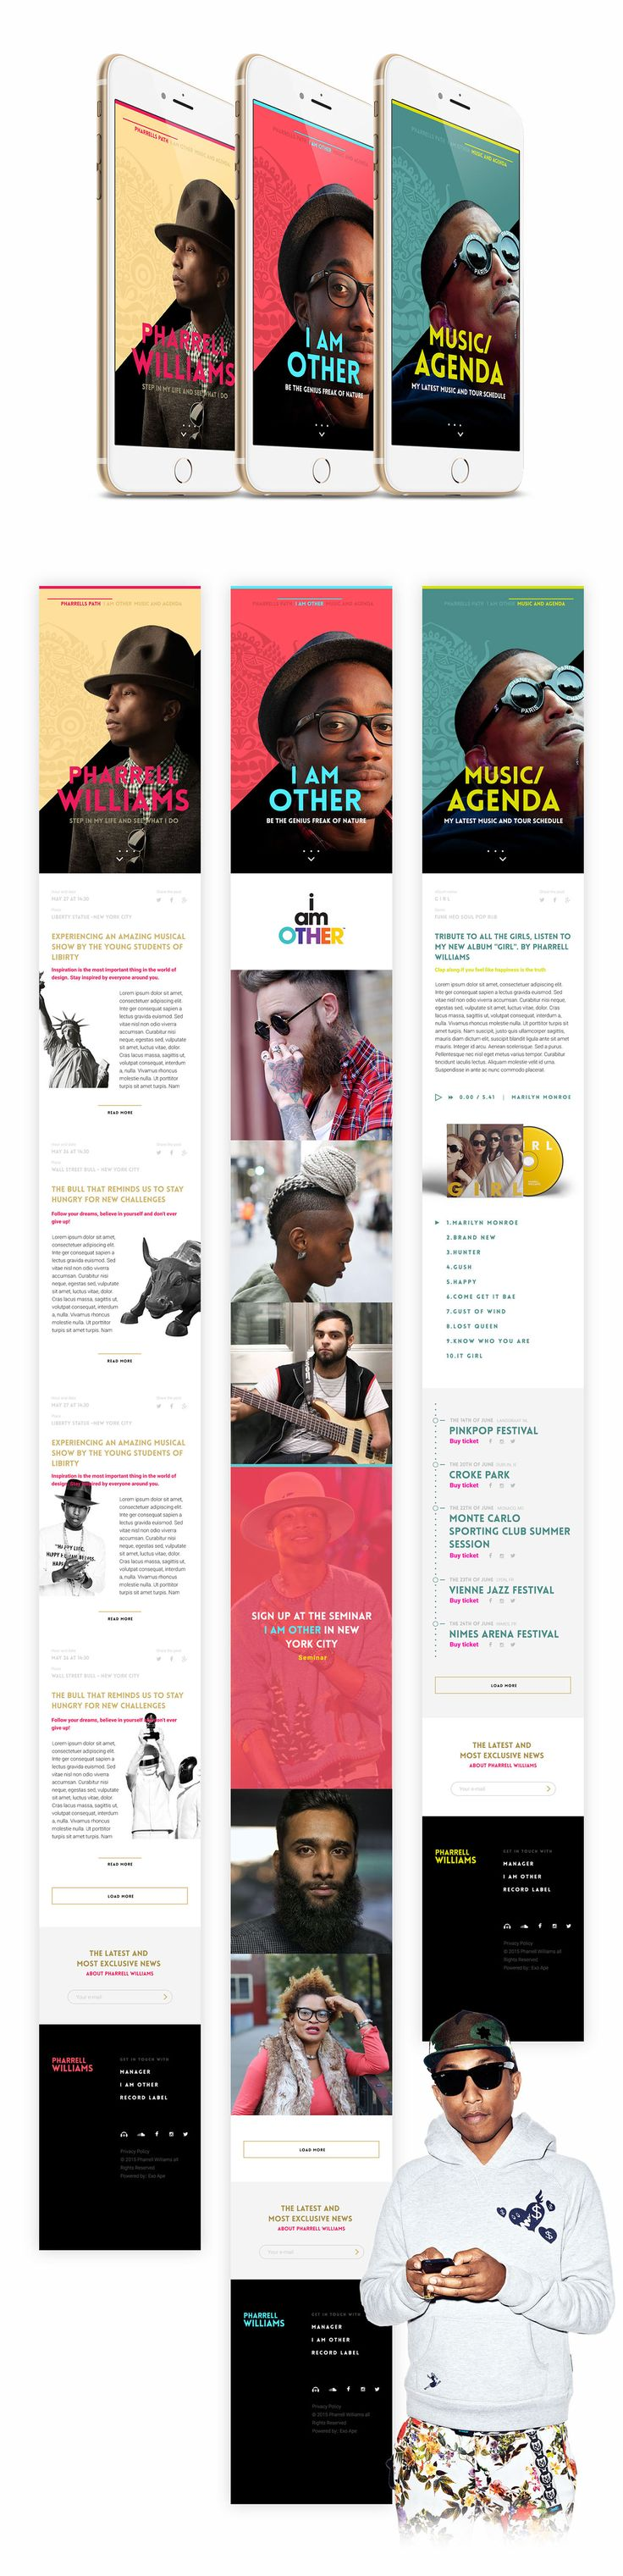 Discover the world of Pharrell Williams by Ronald Gijezen